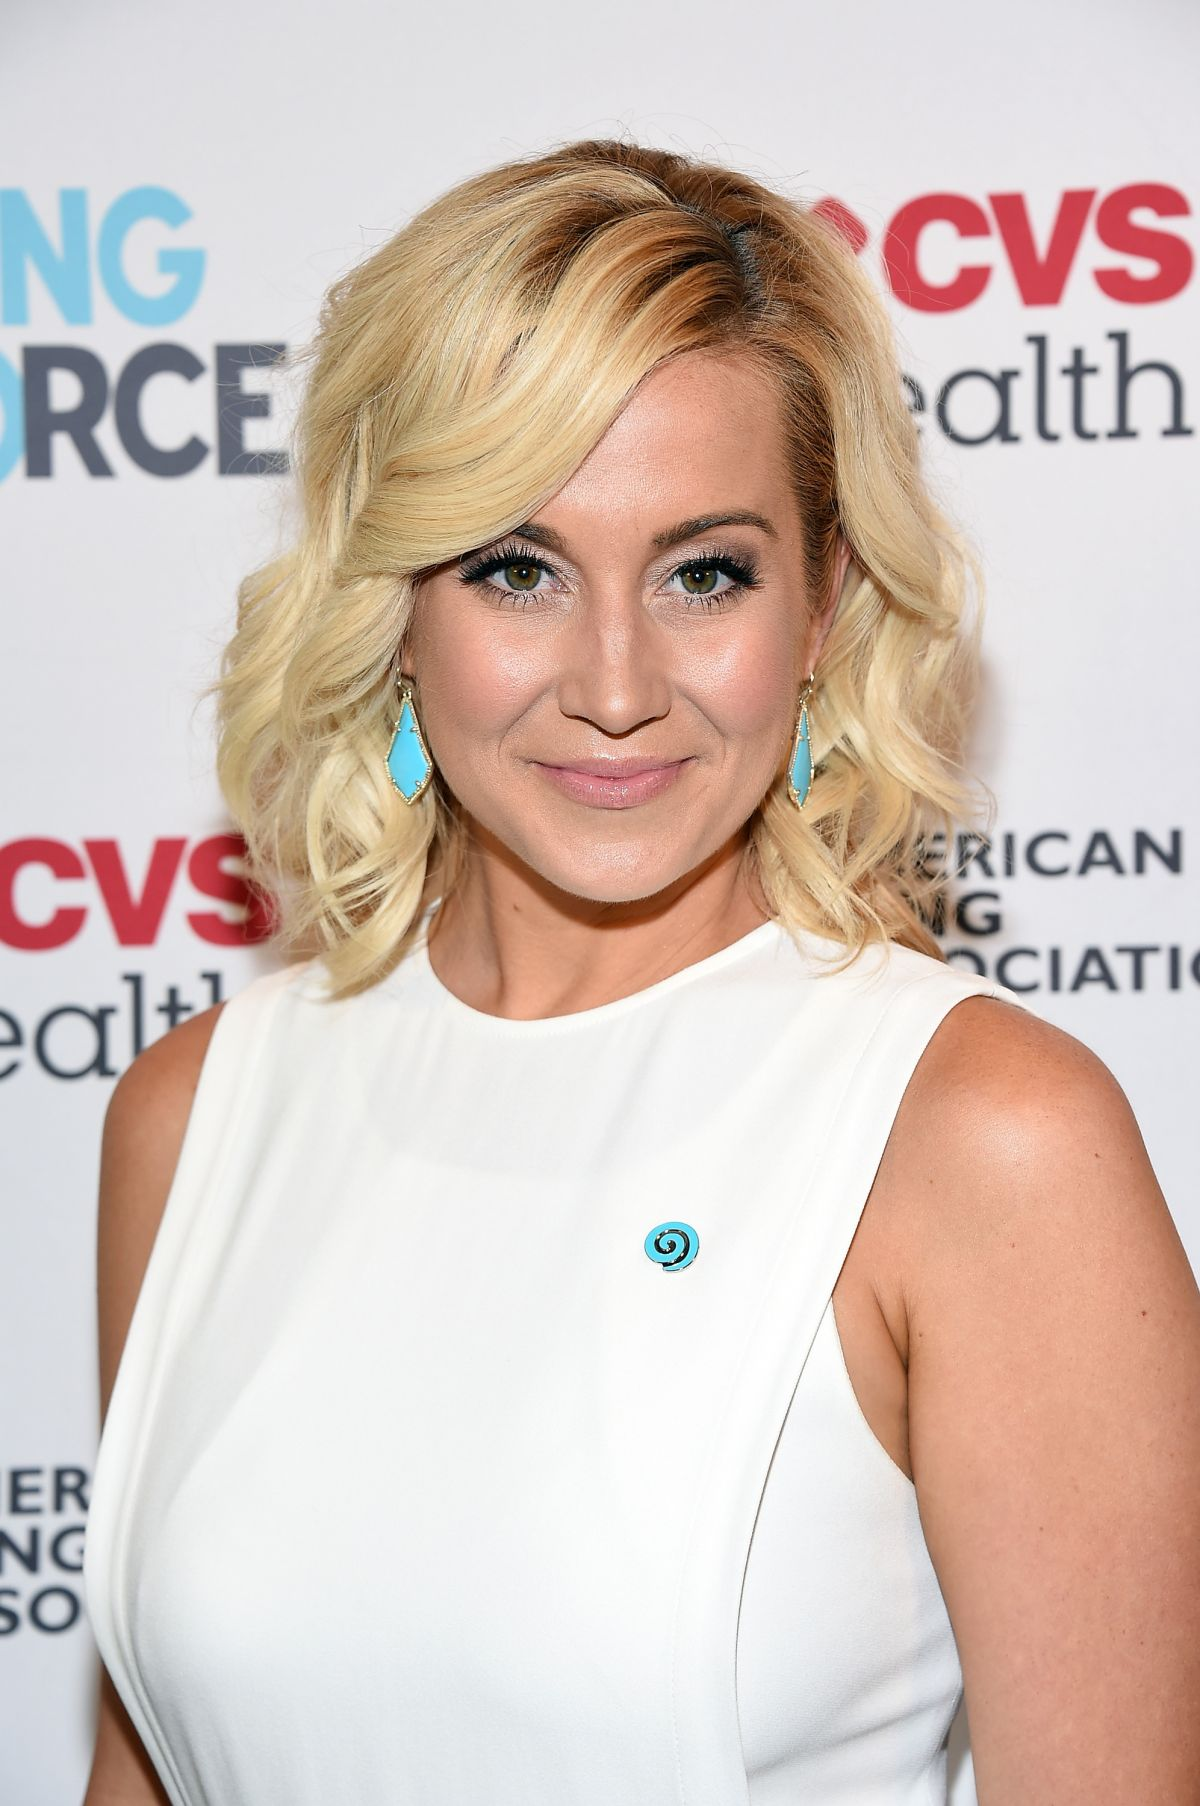 KALLIE PICKLER at American Lung Association